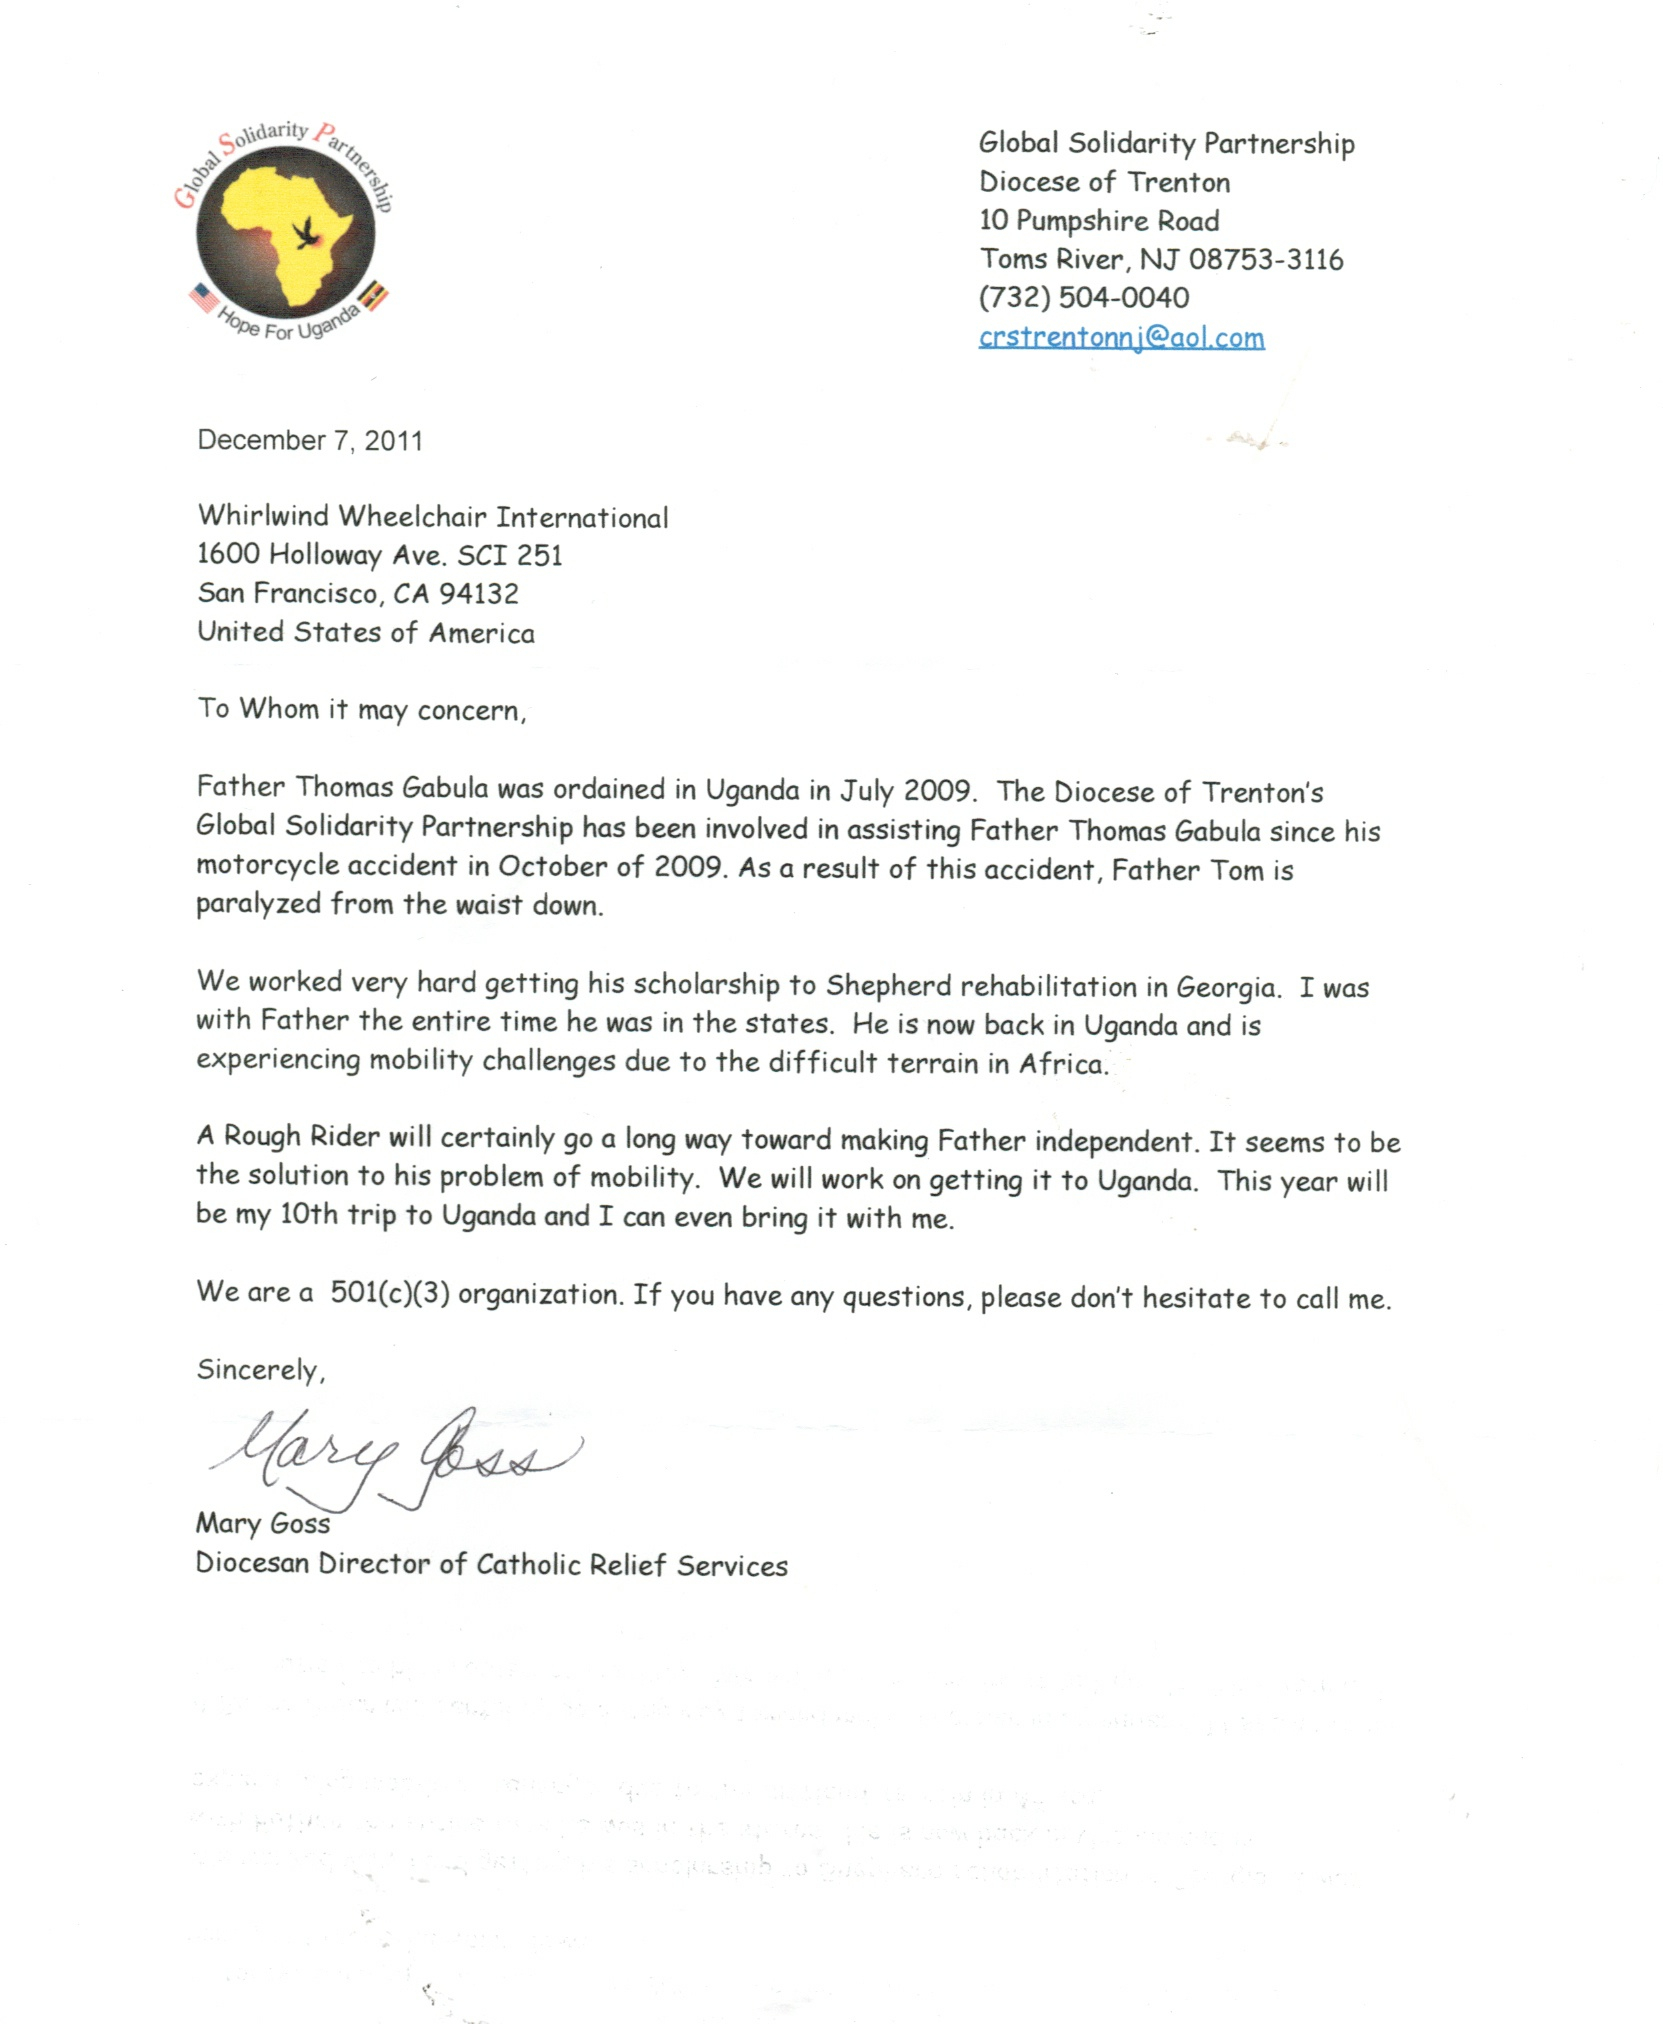 Ministry Support Letter Template - How to Write A Missionary Support Letter Choice Image Letter